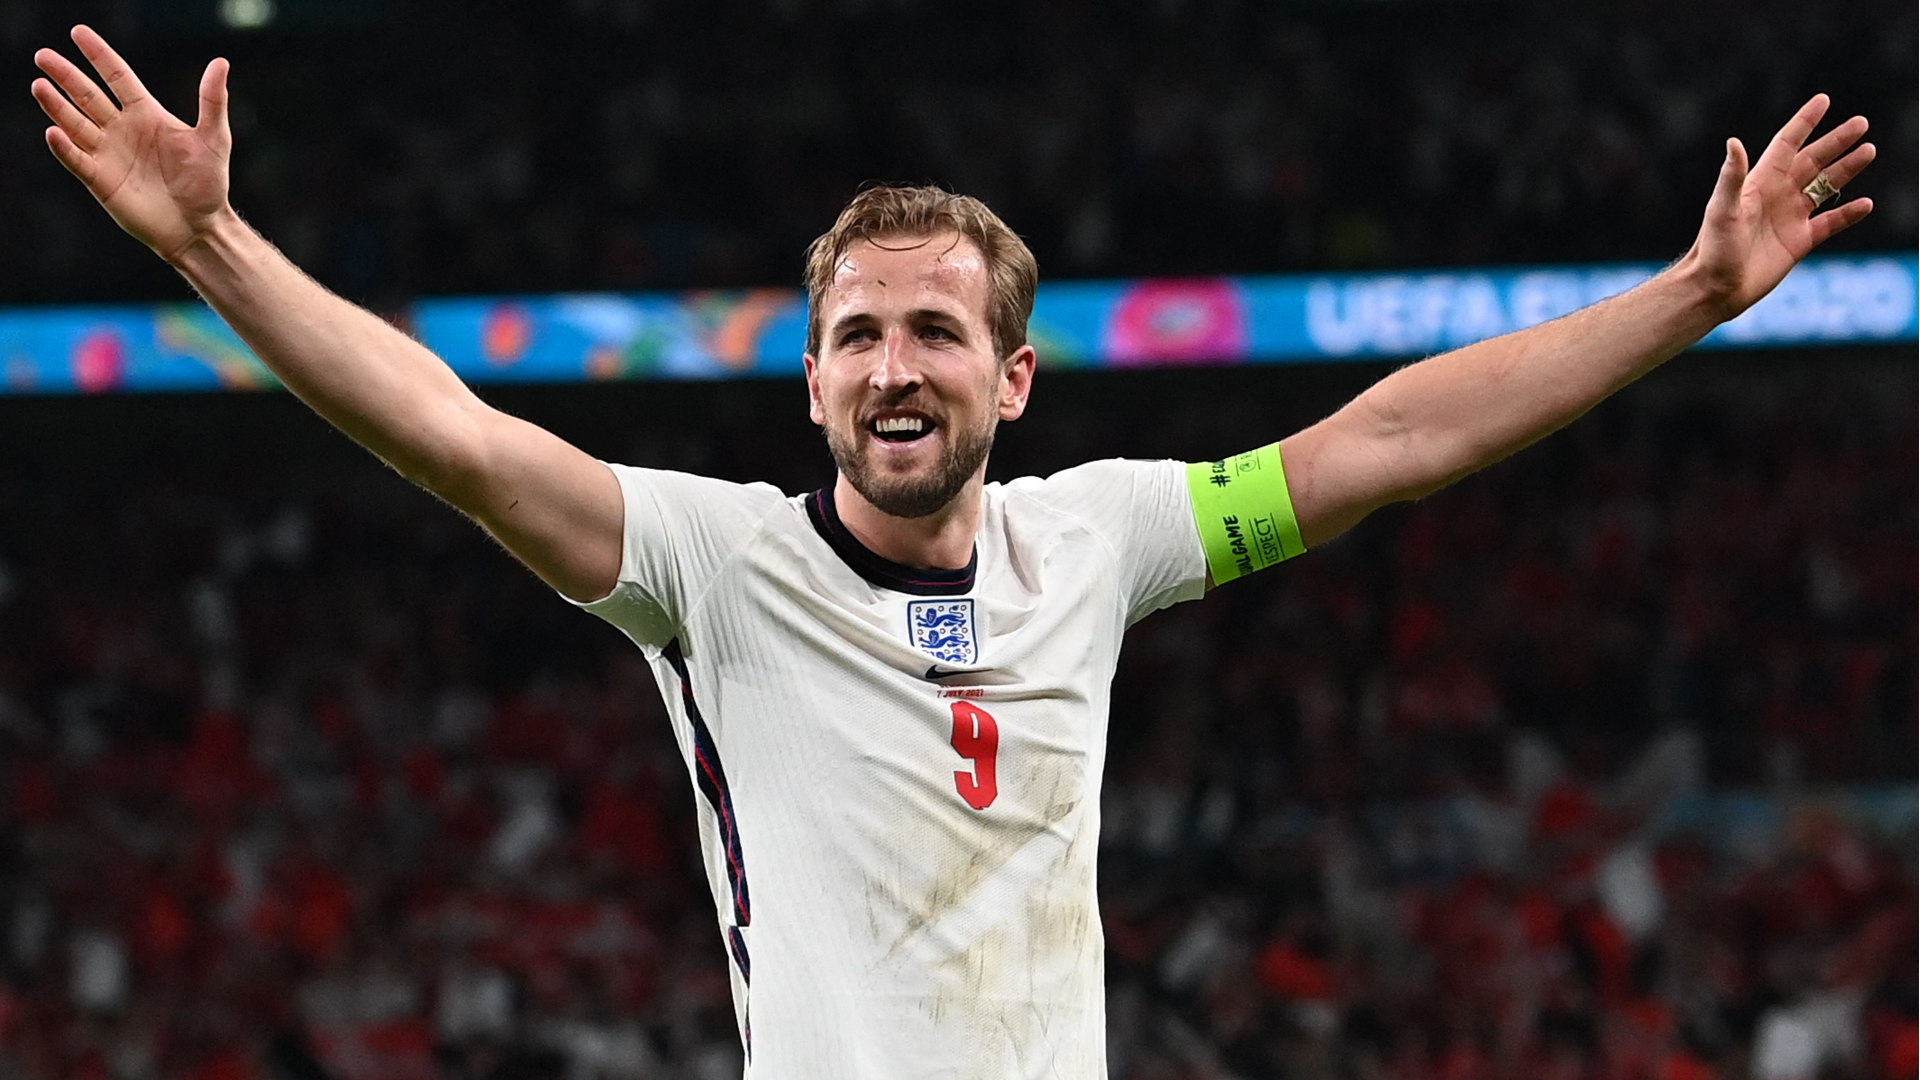 'For once it fell our way' - Kane welcomes penalty 'bonus' in firing England to Euro 2020 final